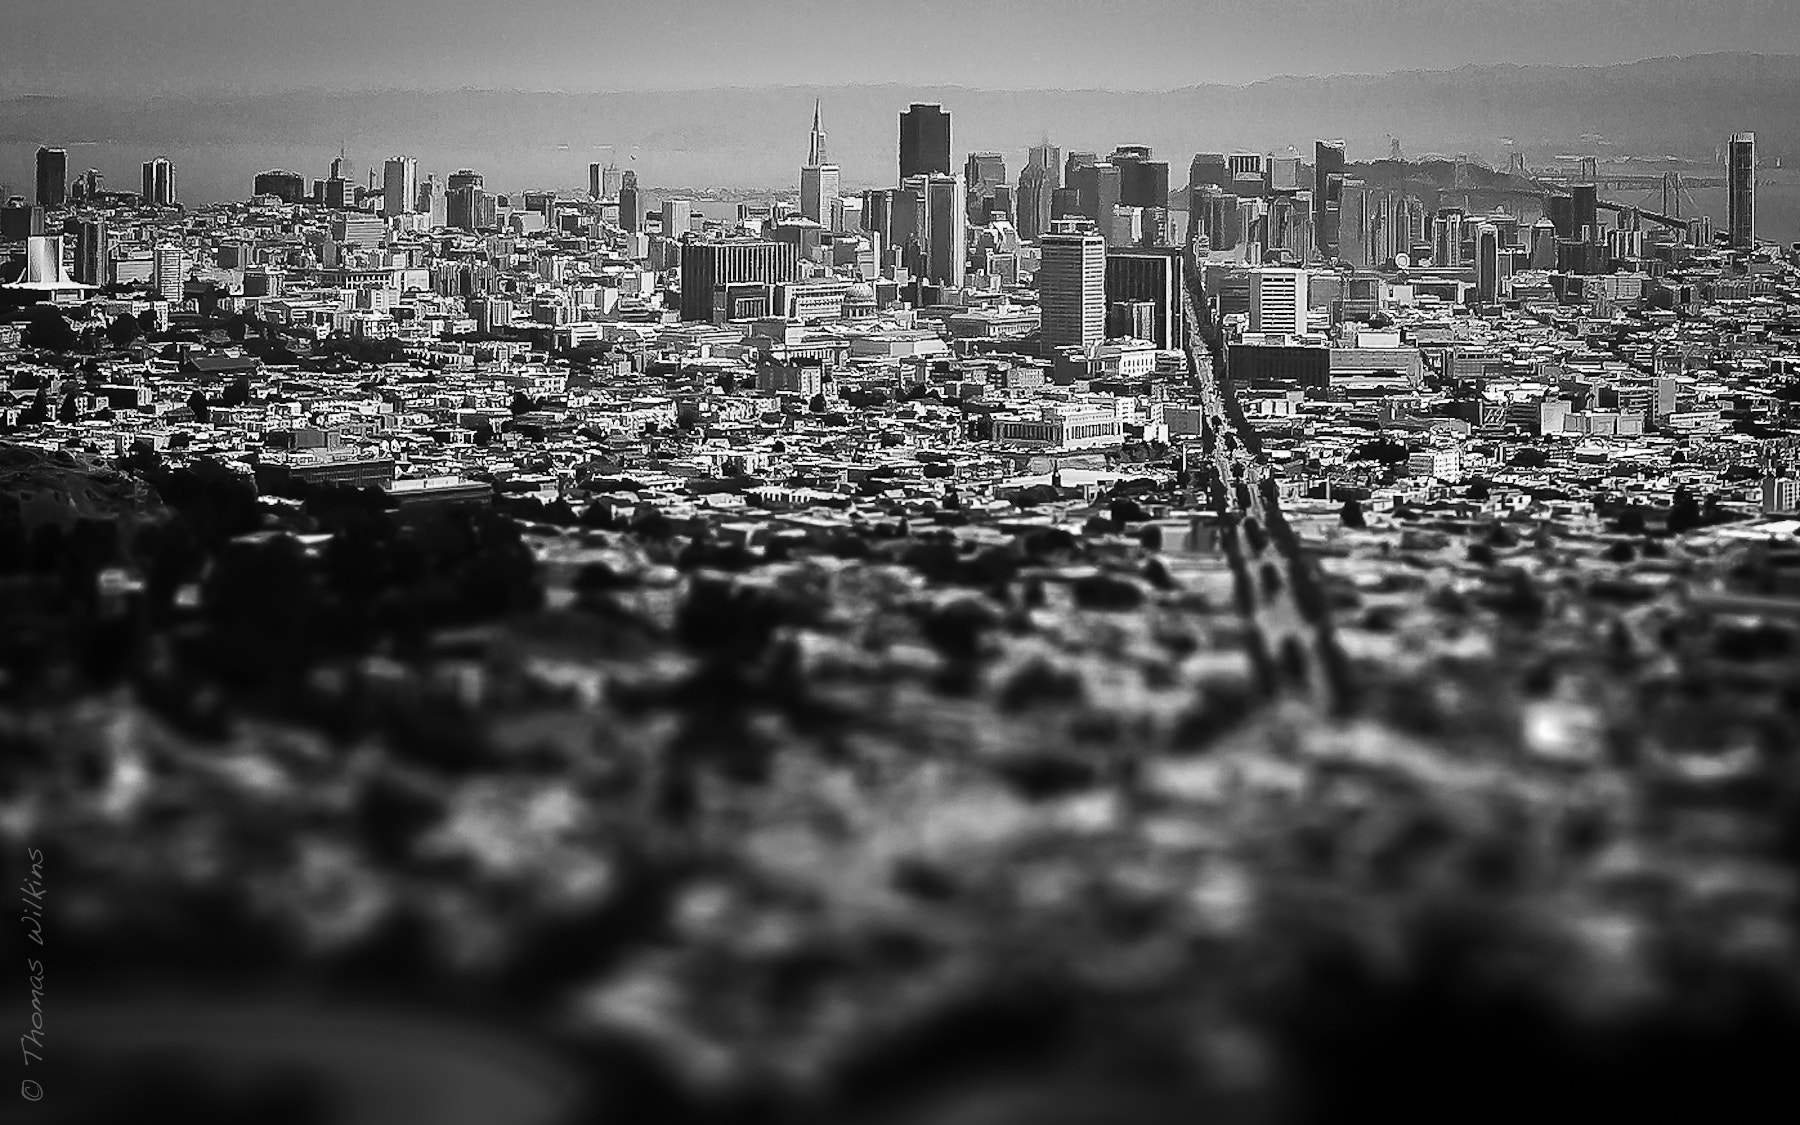 Photograph Concrete Jungle by Tom Wilkins on 500px